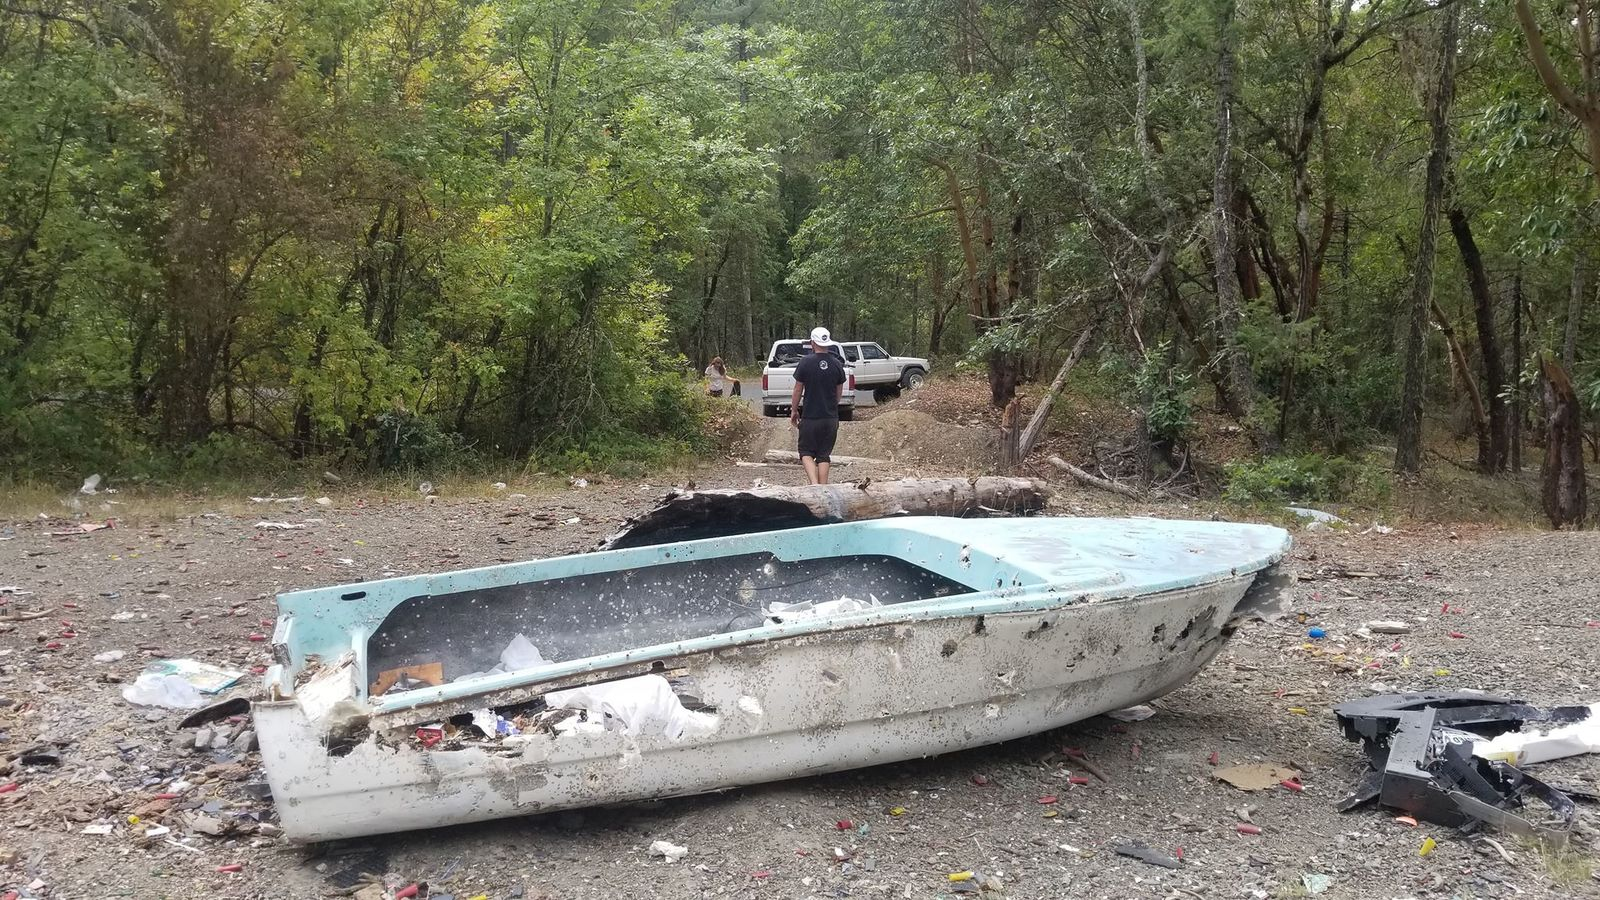 The boat the group found in the forest. (Courtesy: Sam Watson){ }